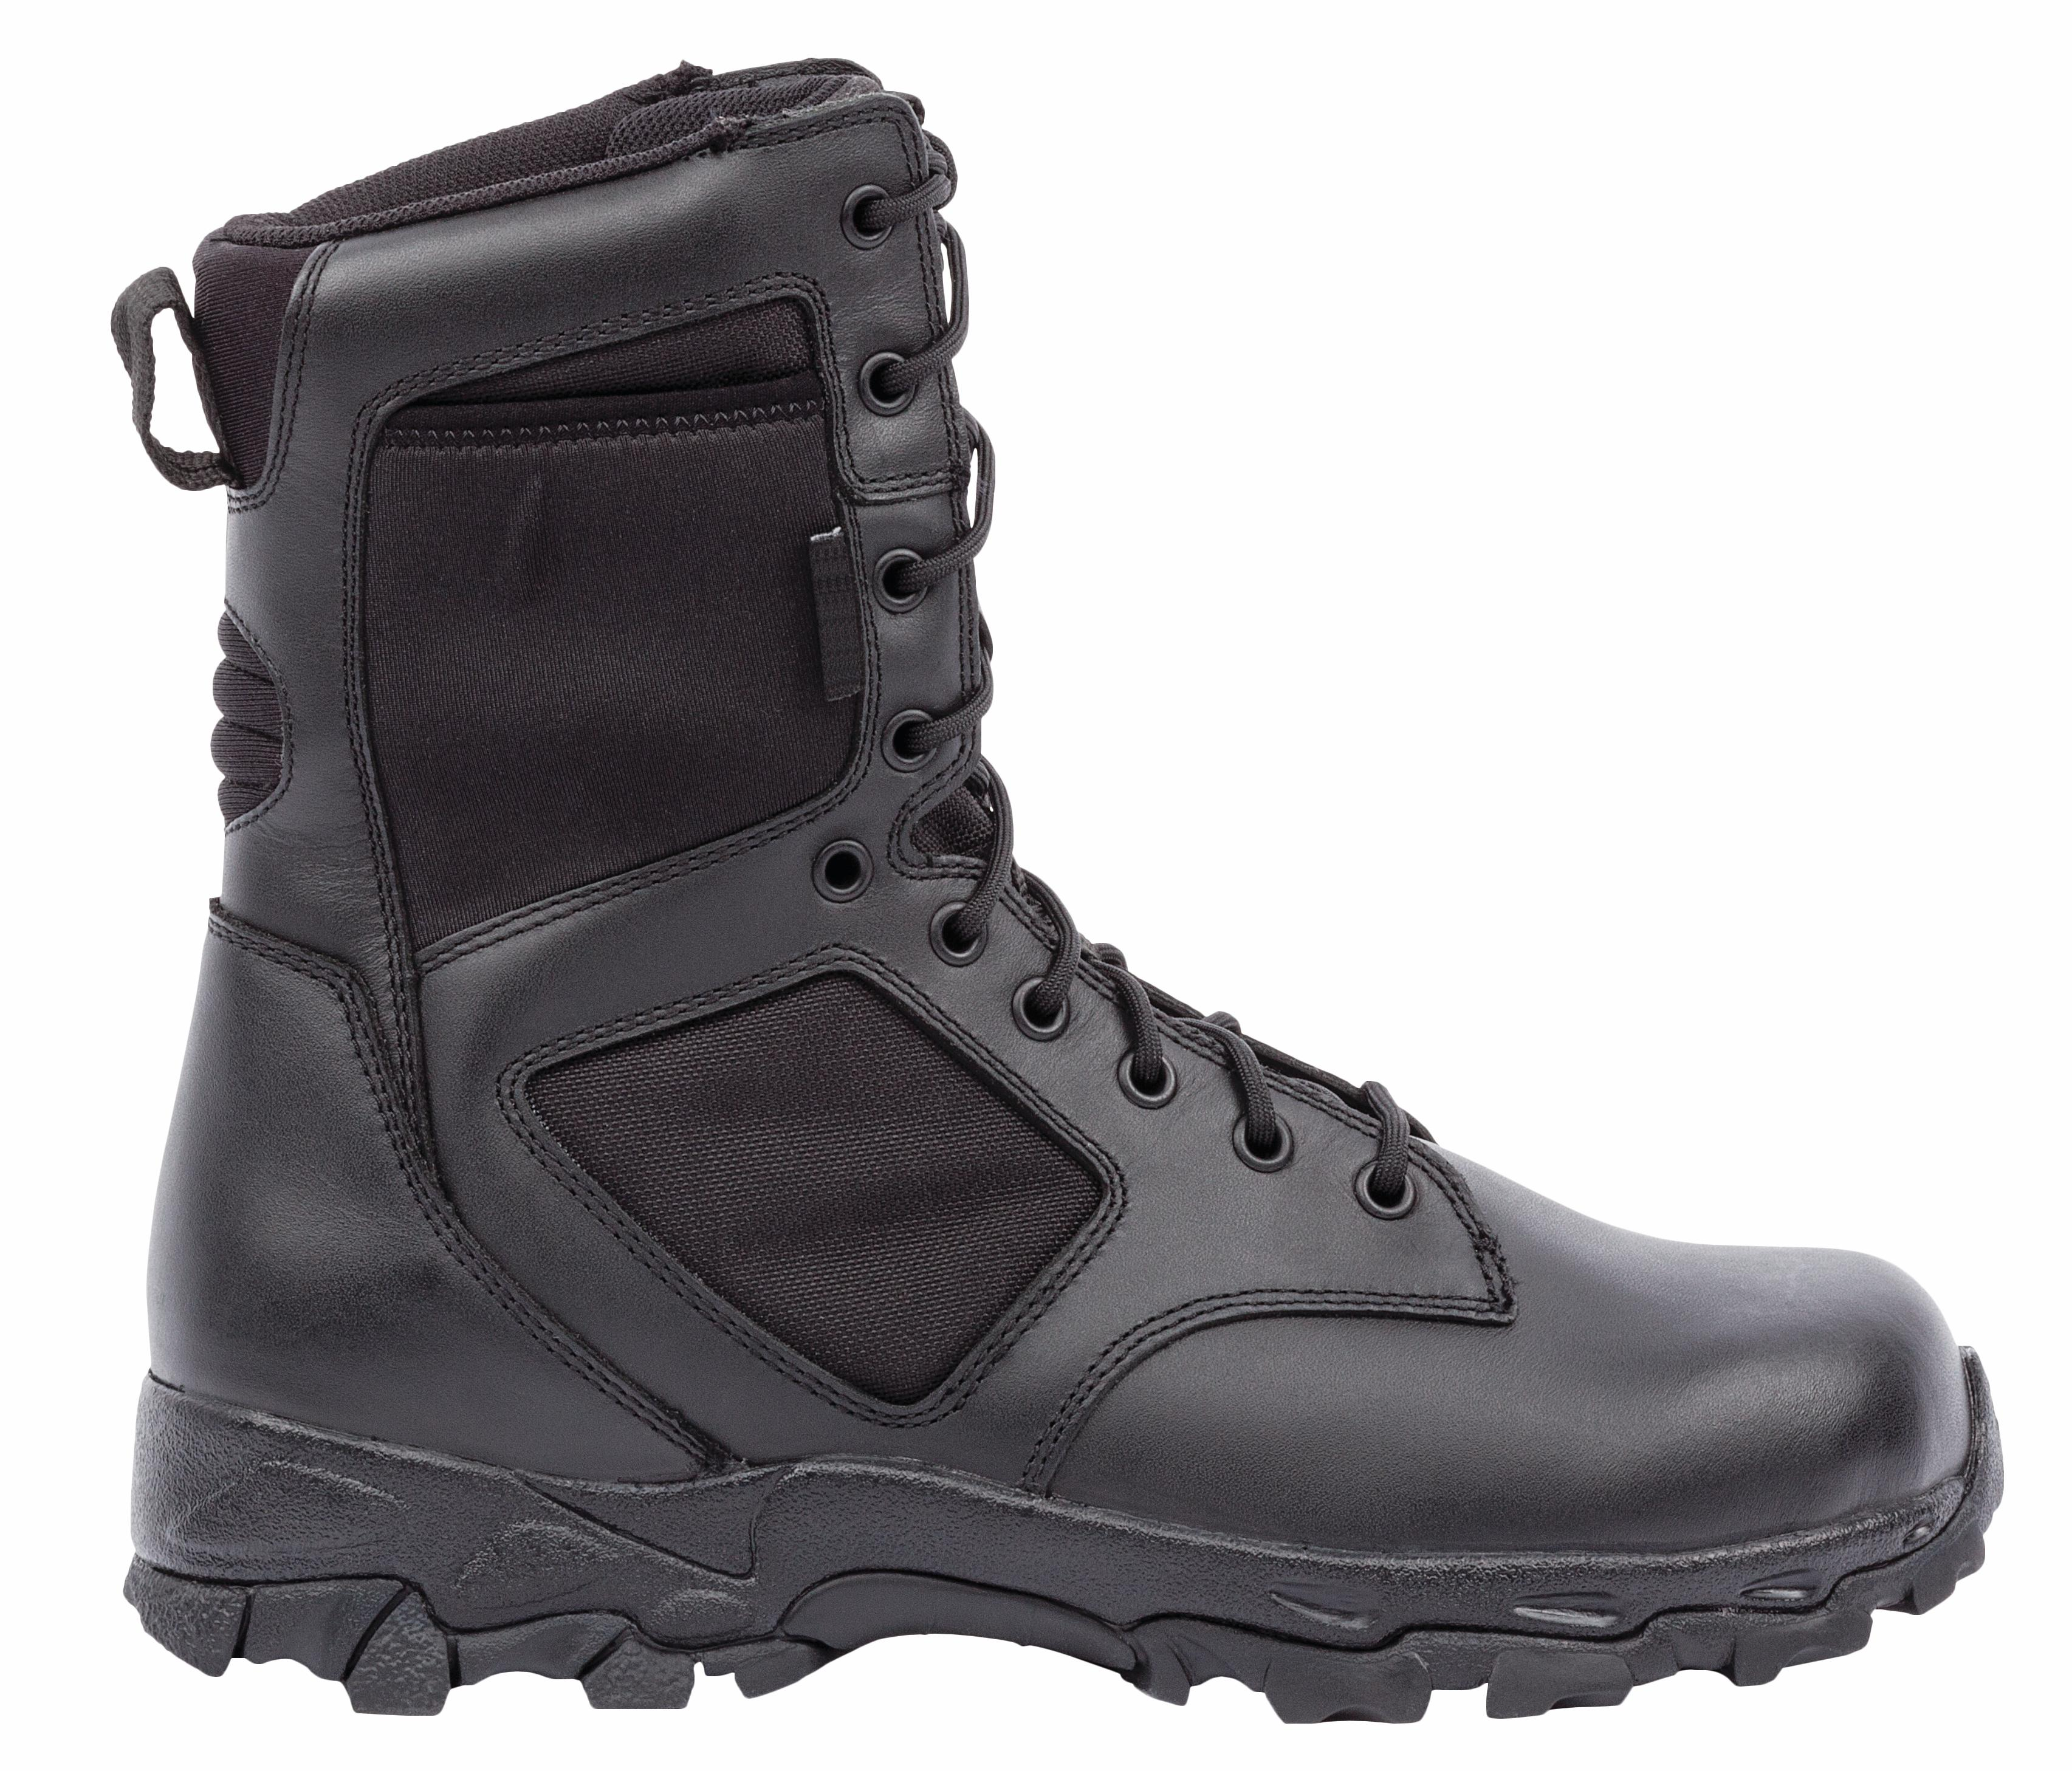 Blackhawk Tactical Boots